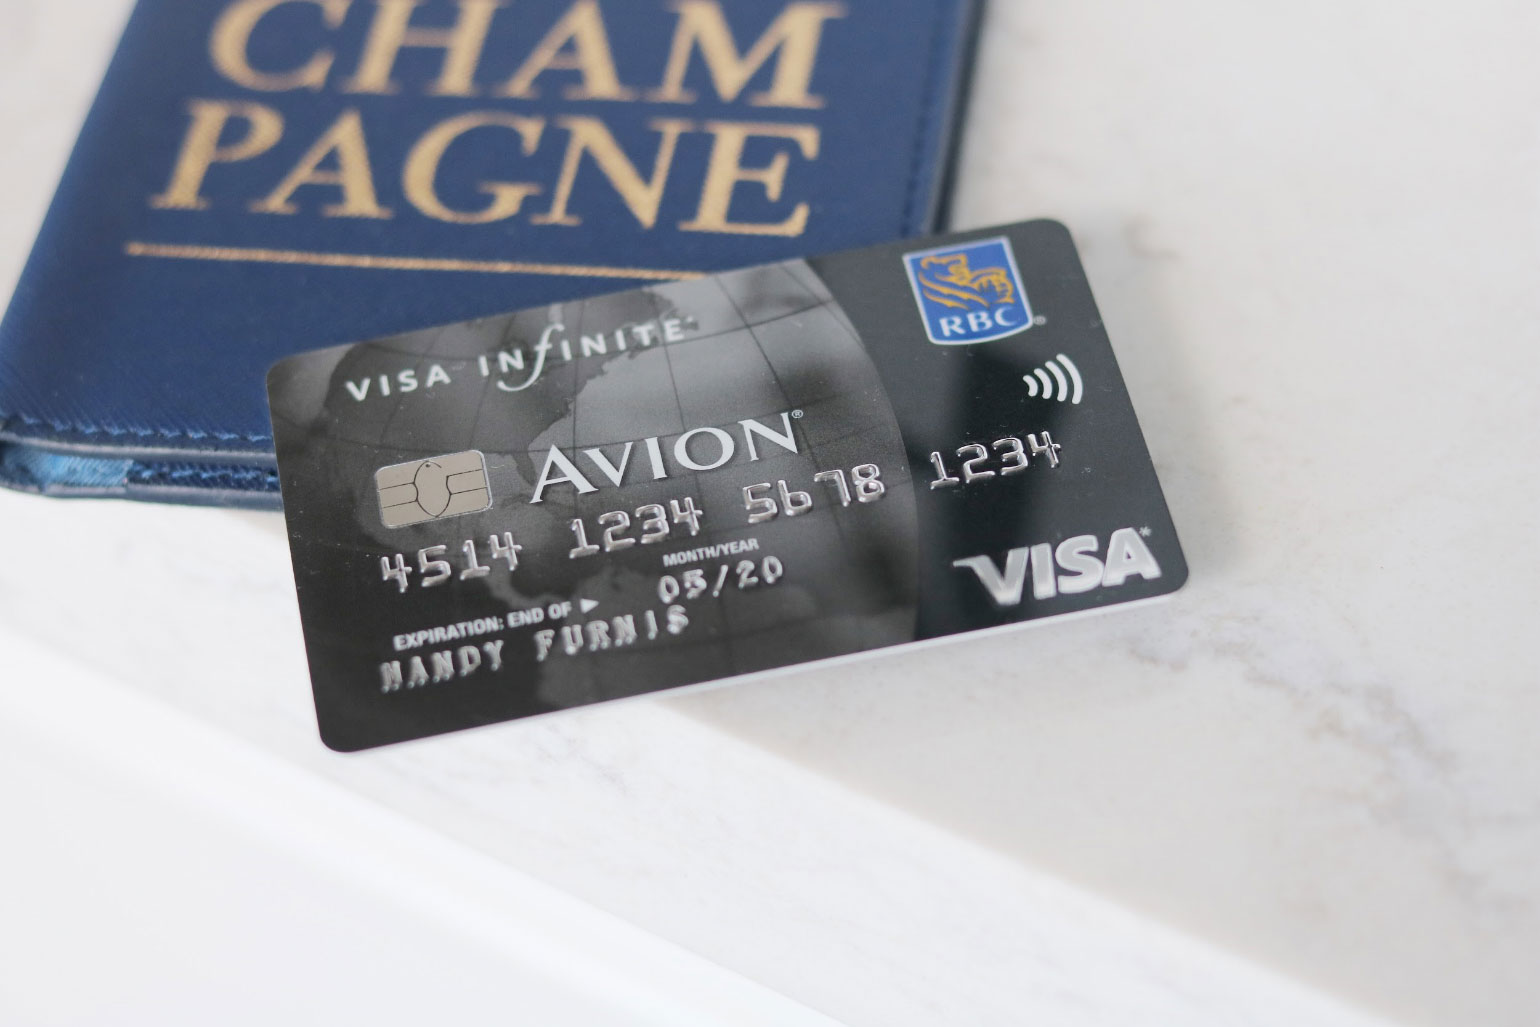 An Avion card with a luggage tag